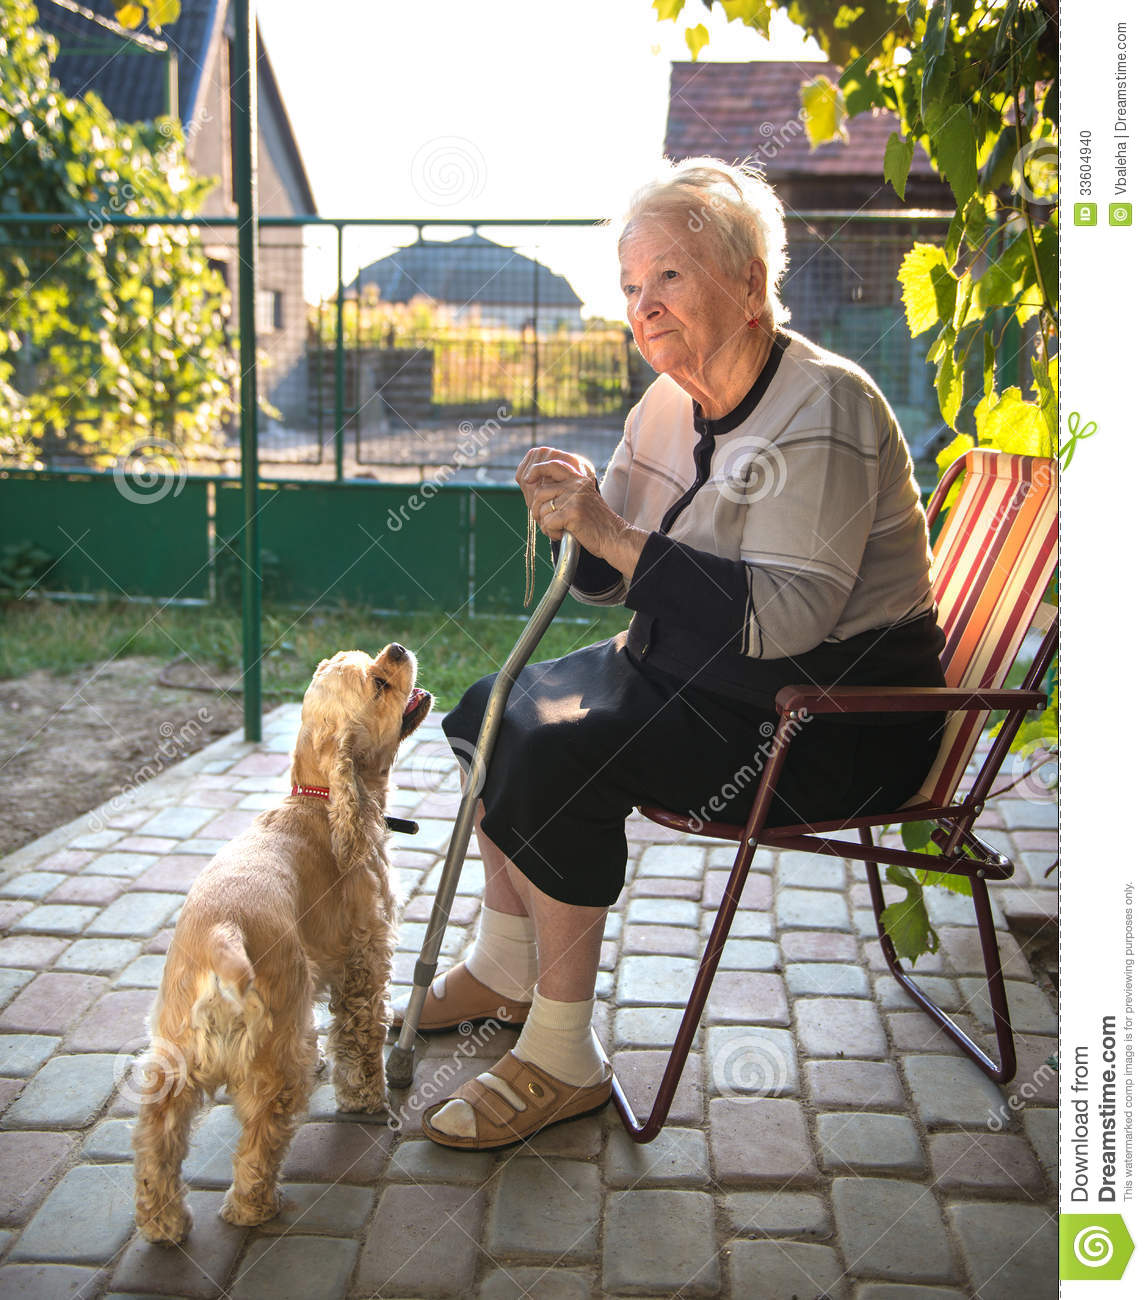 Old Woman Sitting On A Chair With A Cane Stock Photo